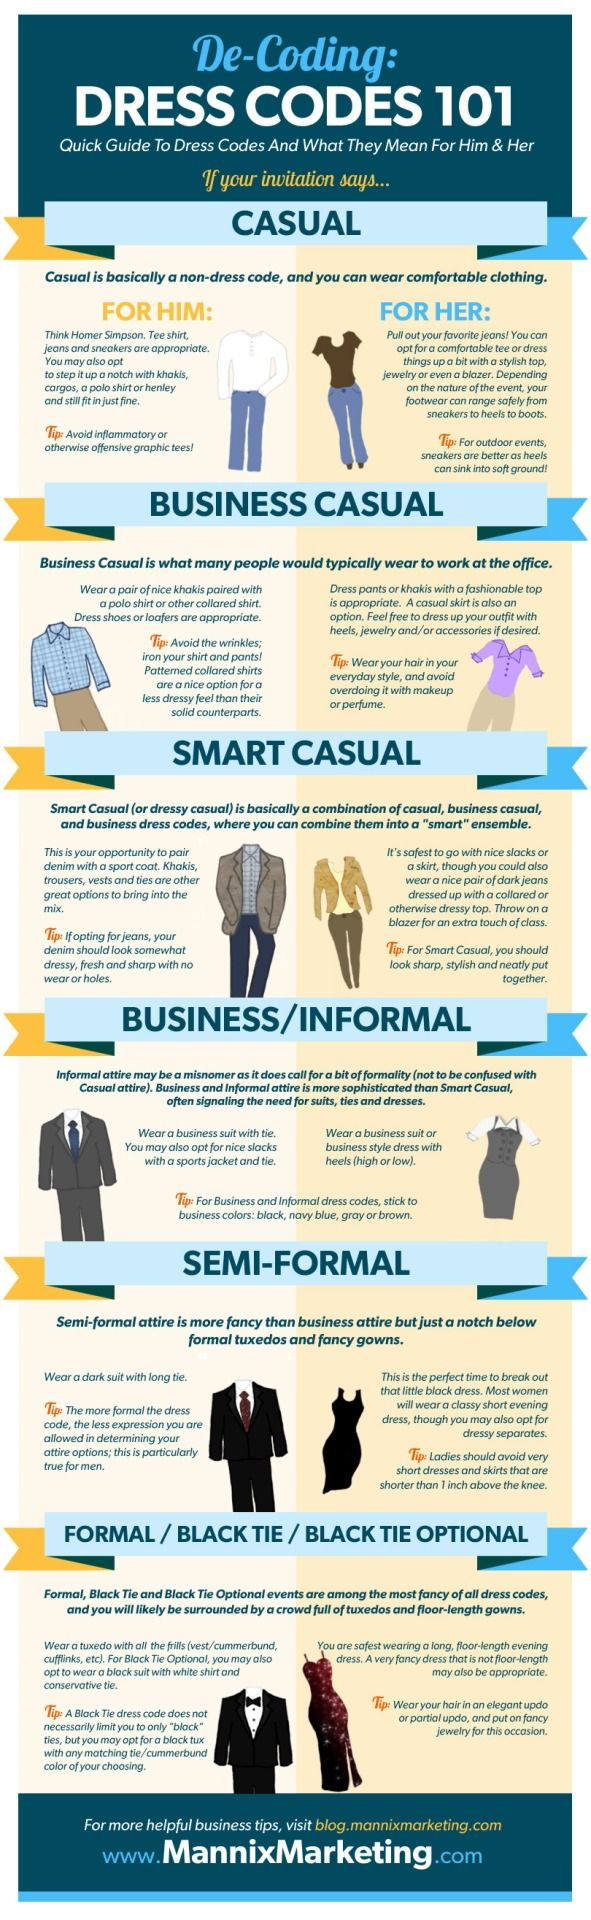 Dress Codes 101: From Casual to Black Tie